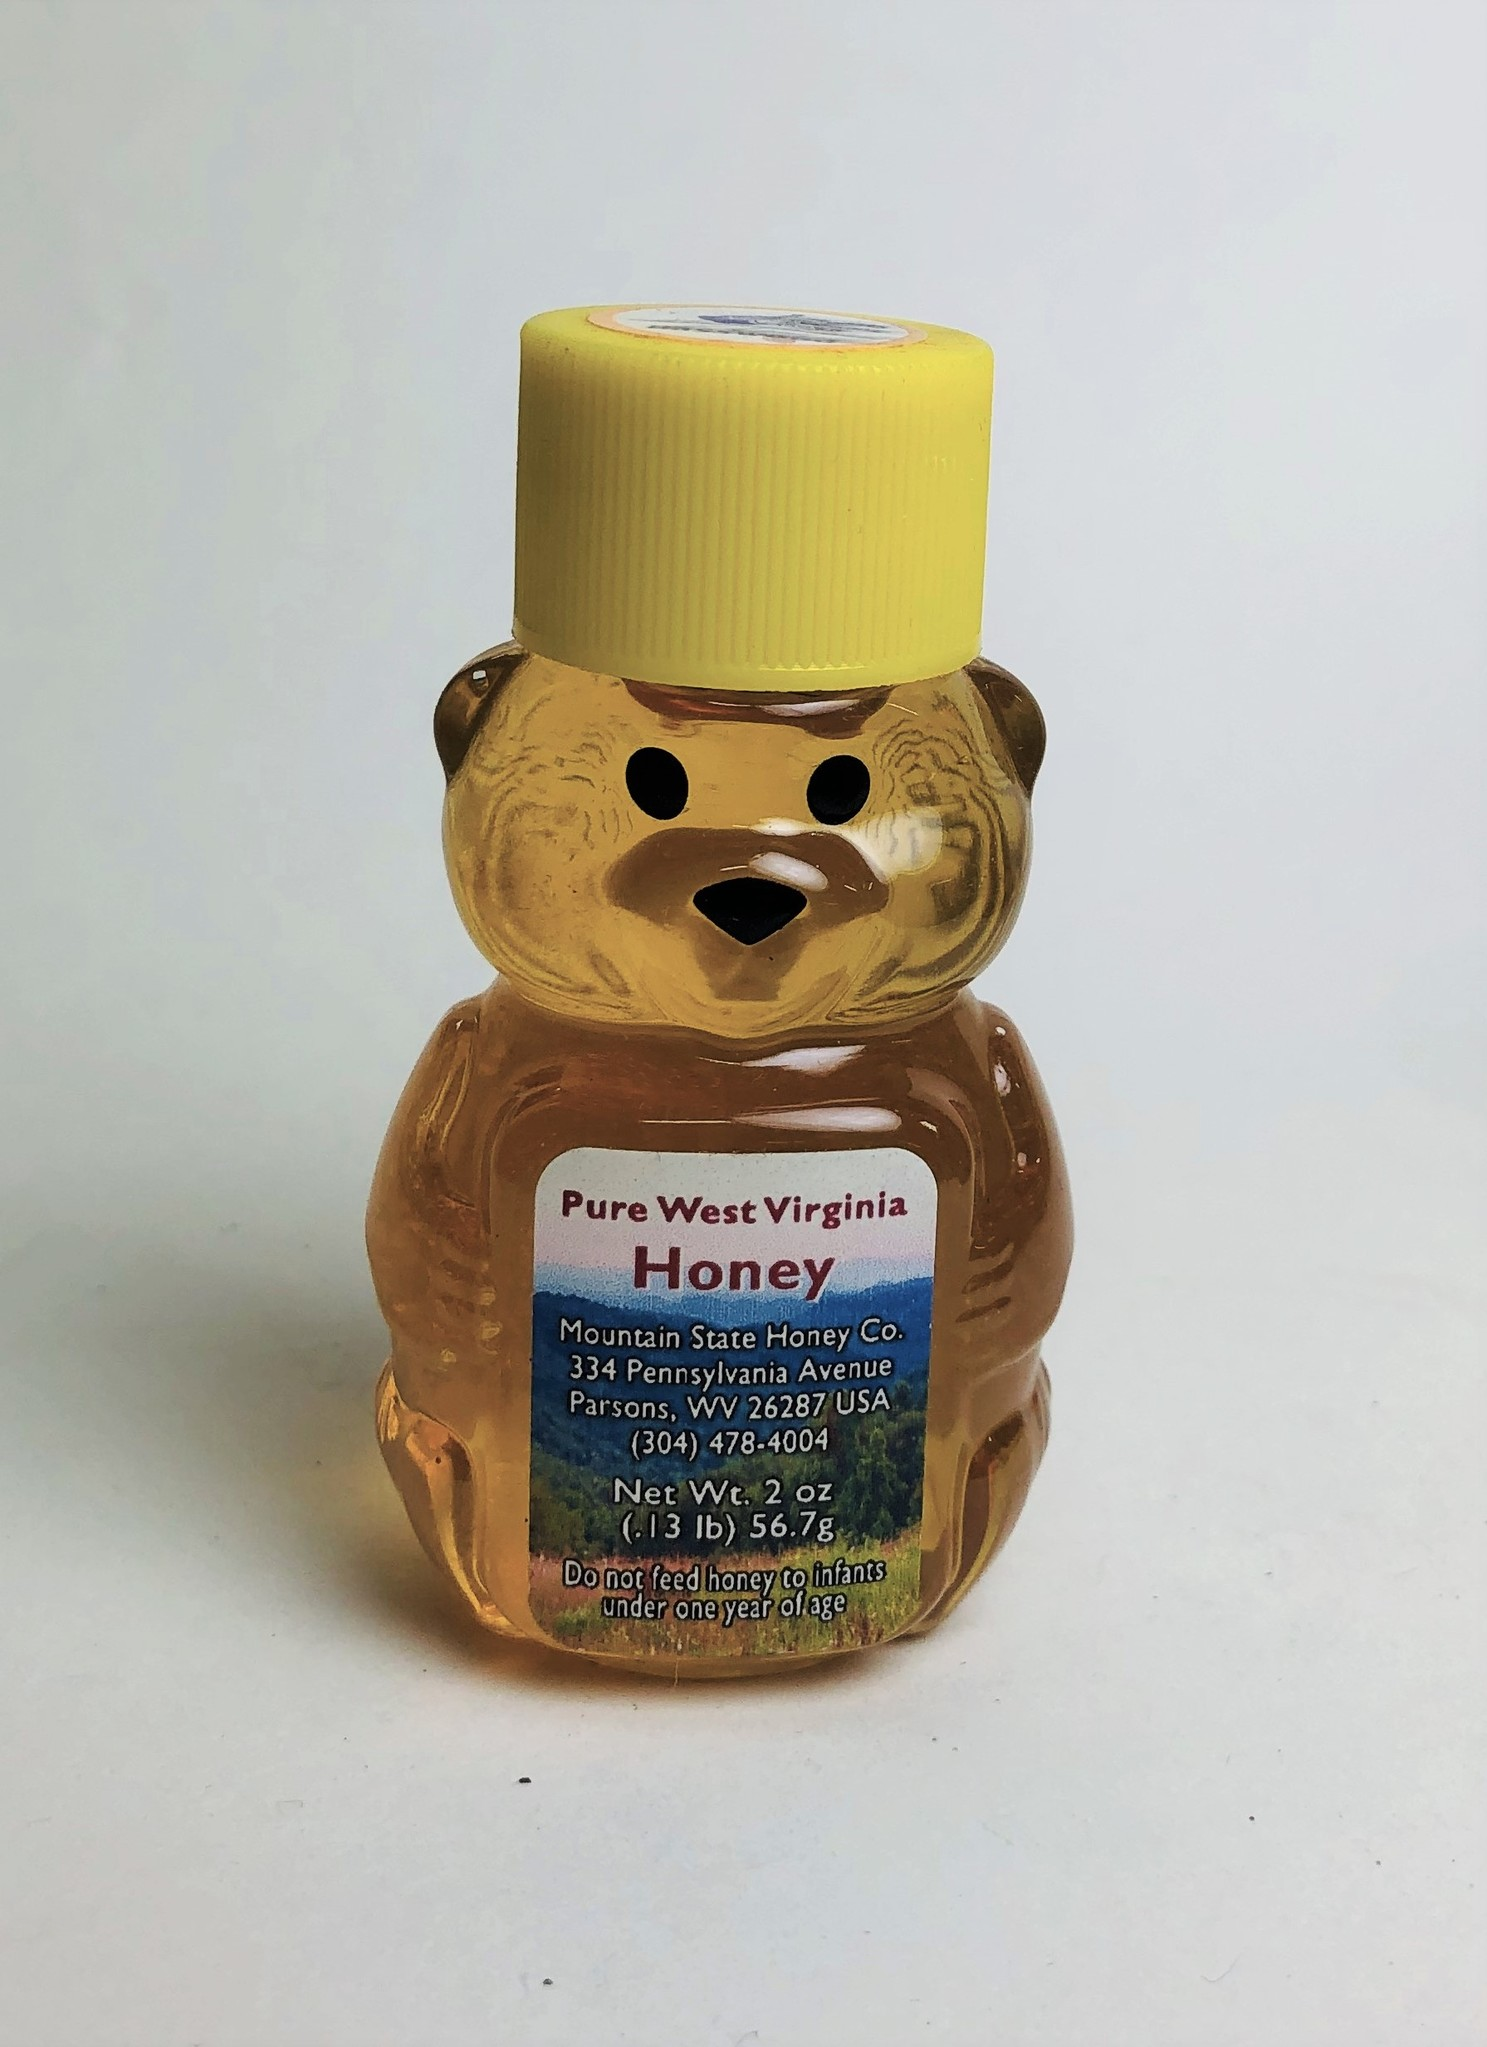 Mountain State Honey Company Mtn State Honey 2 oz. Goldenrod Bear